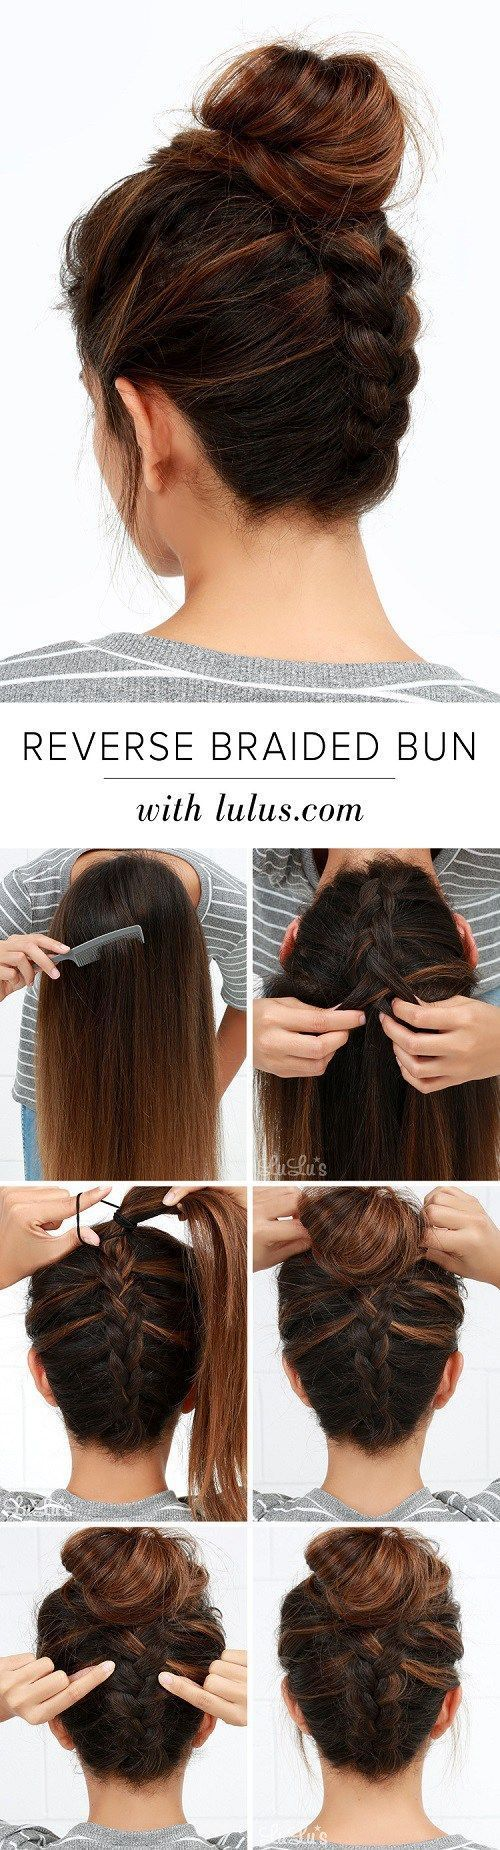 Awesome 20 hair tutorials you can totally diy the right hairstyles awesome 20 hair tutorials you can totally diy the right hairstyles for you by http solutioingenieria Choice Image